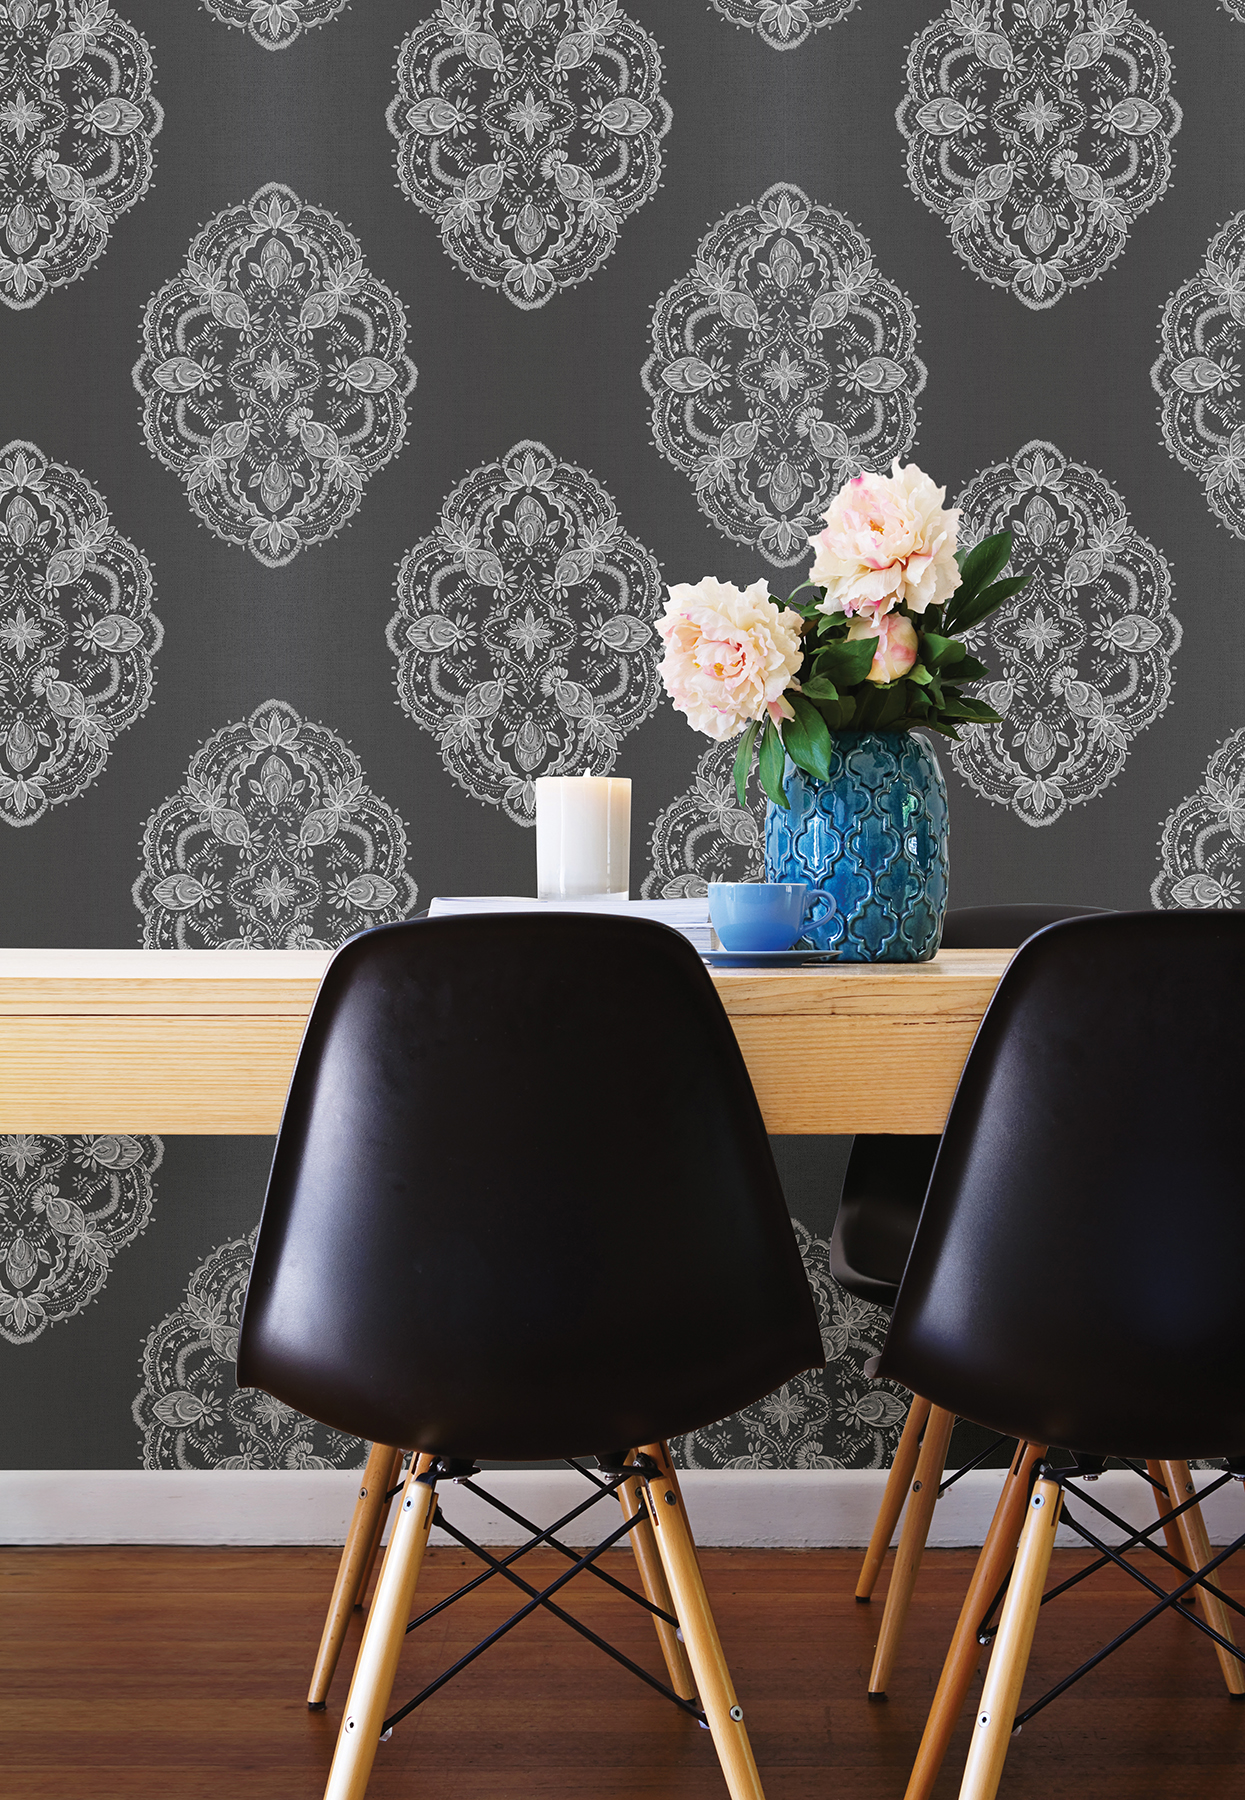 Image result for chic wallpaper in home